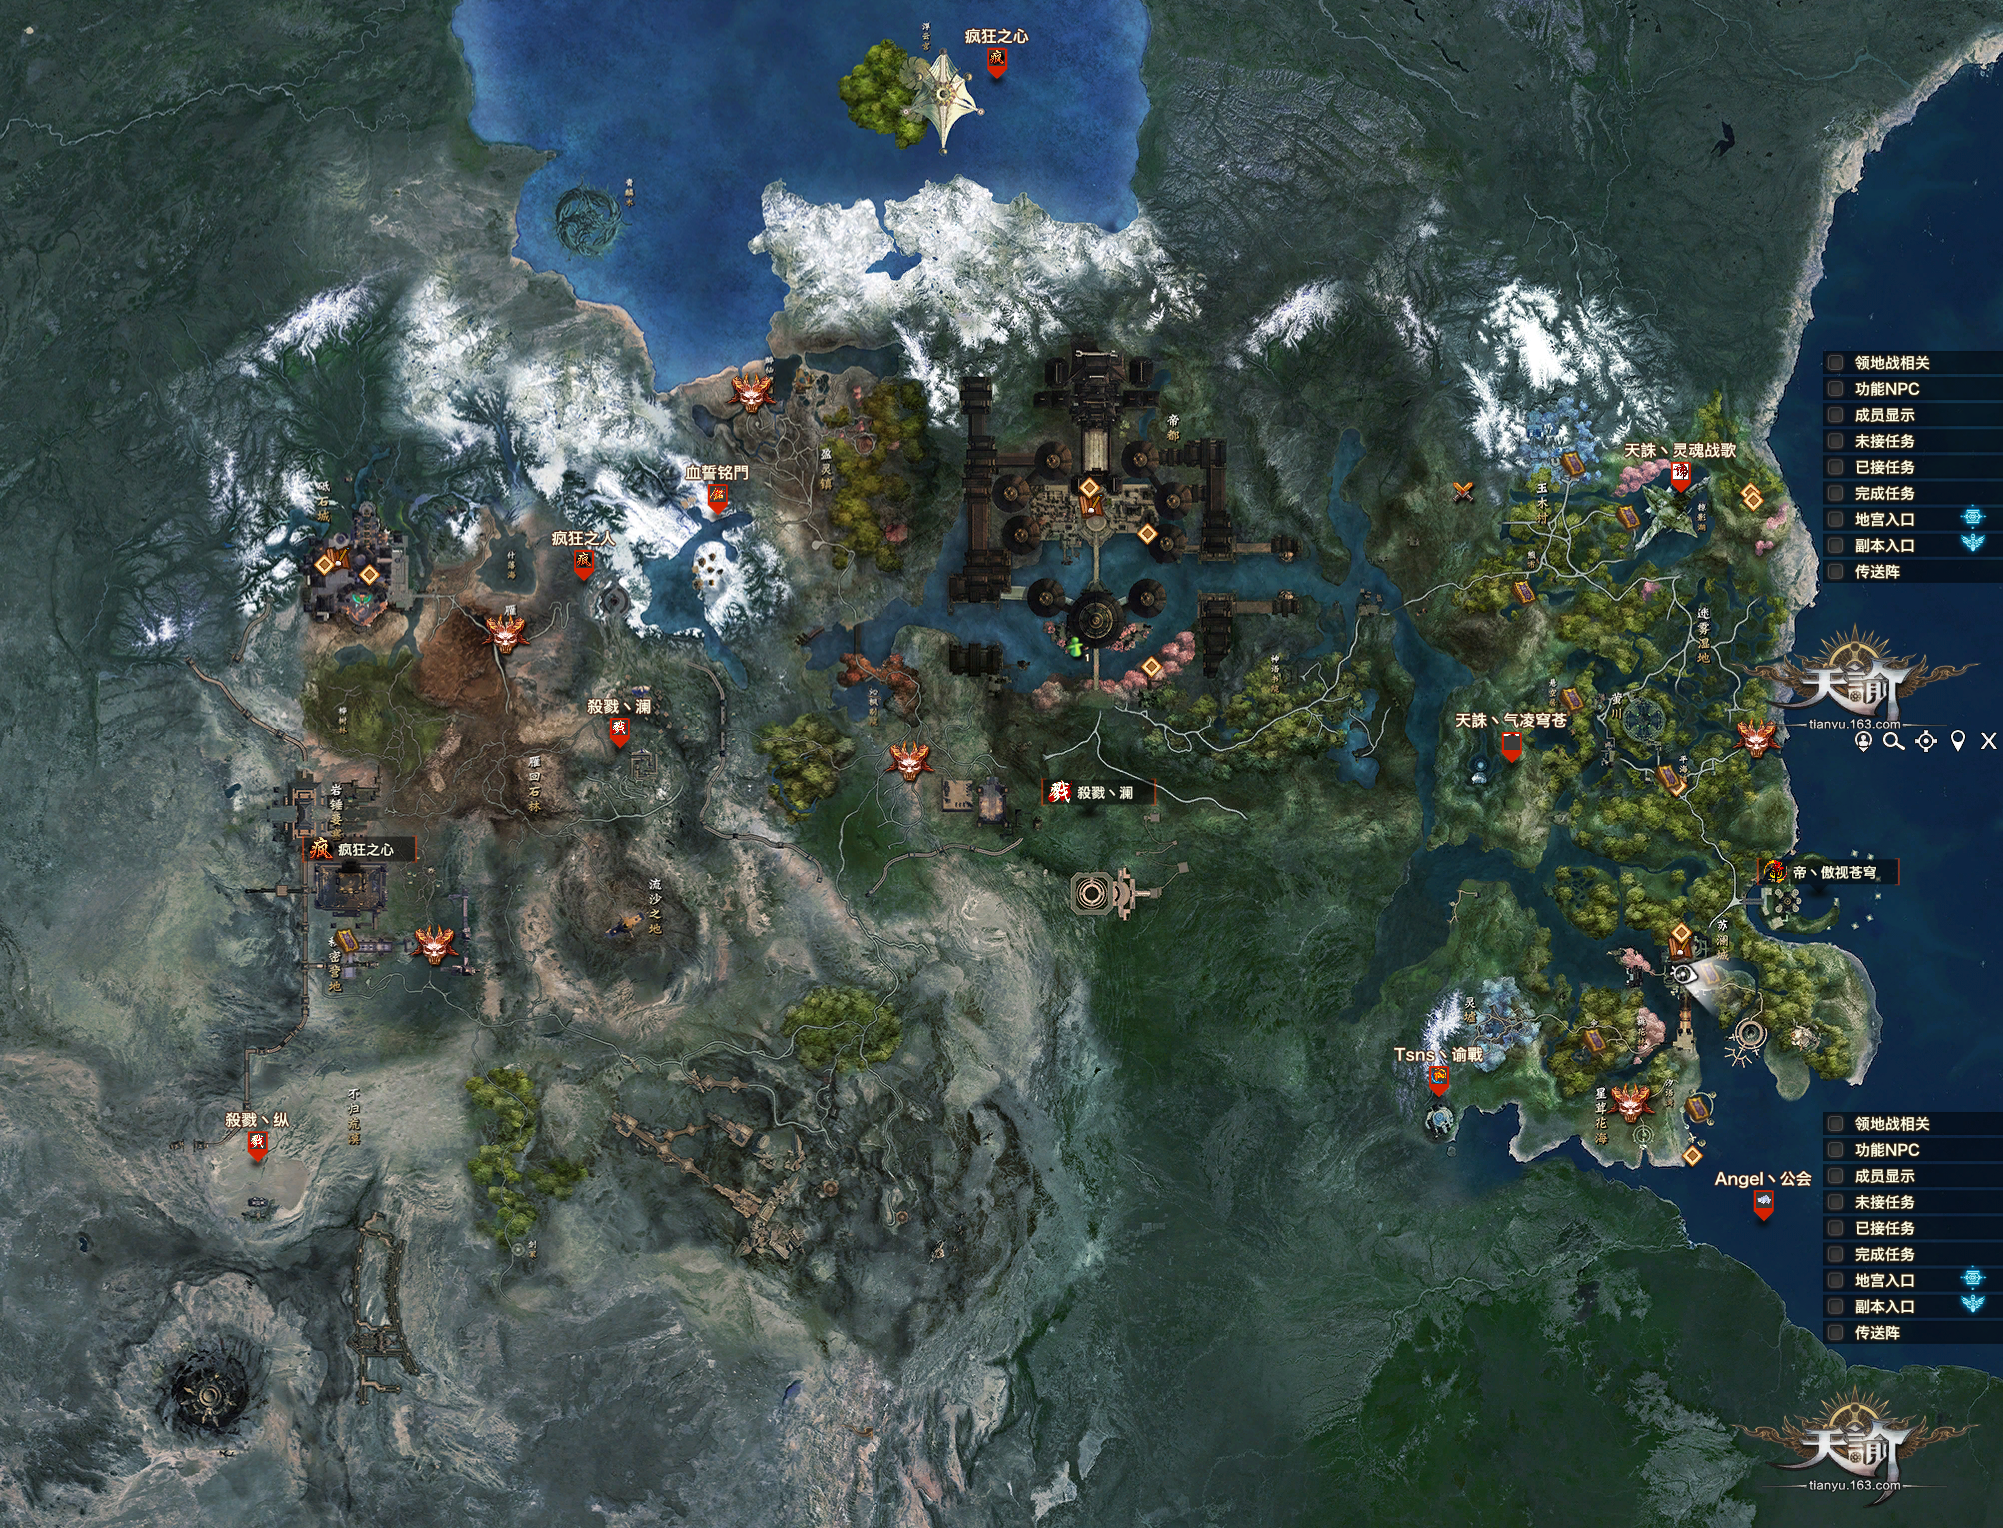 Map revelation online wikia fandom powered by wikia revelations online world map gumiabroncs Choice Image